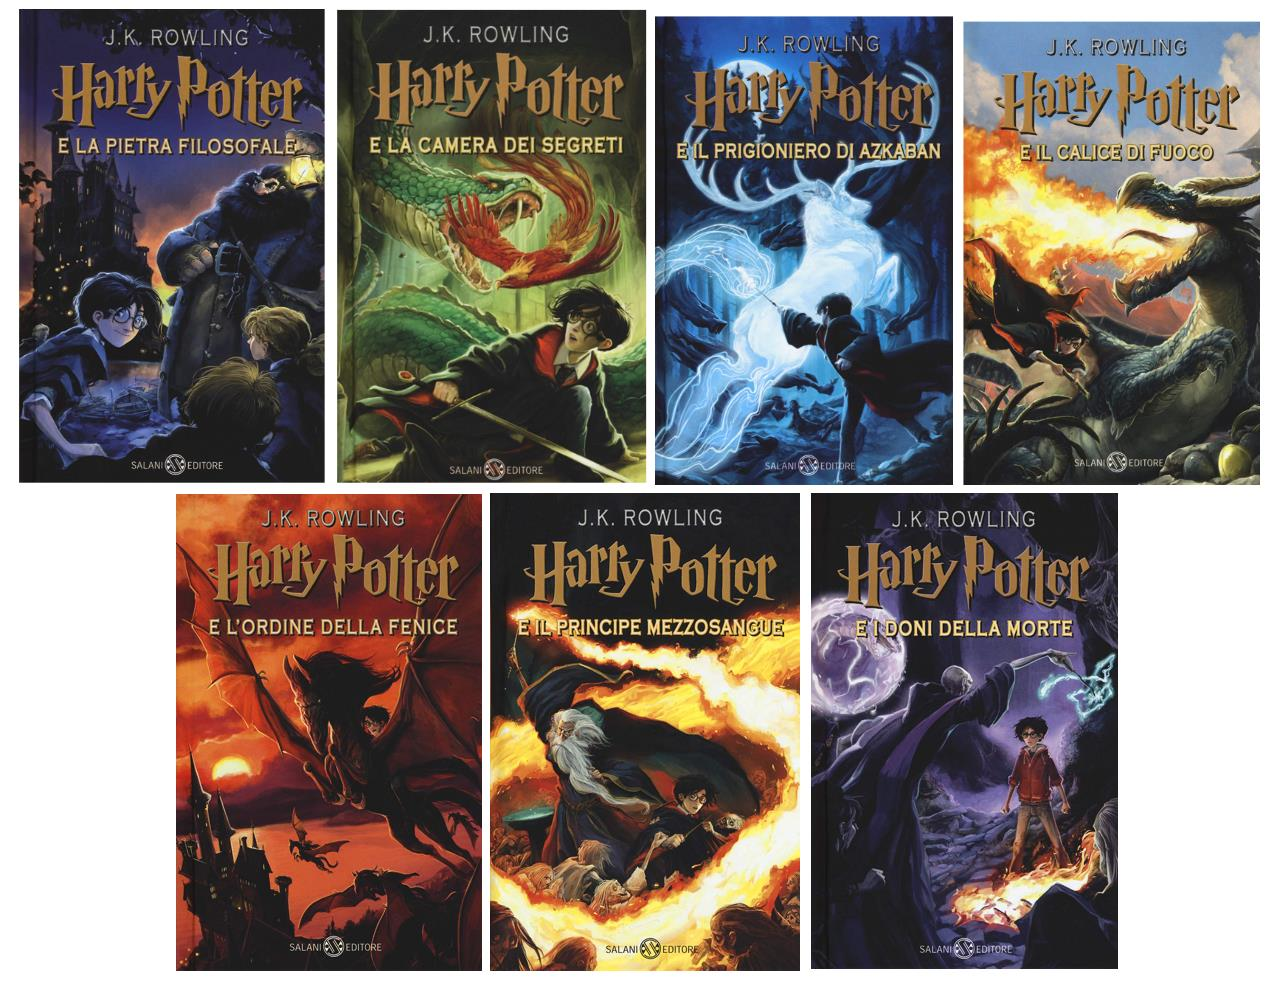 harry-potter-2020-edizione-jonny-duddle